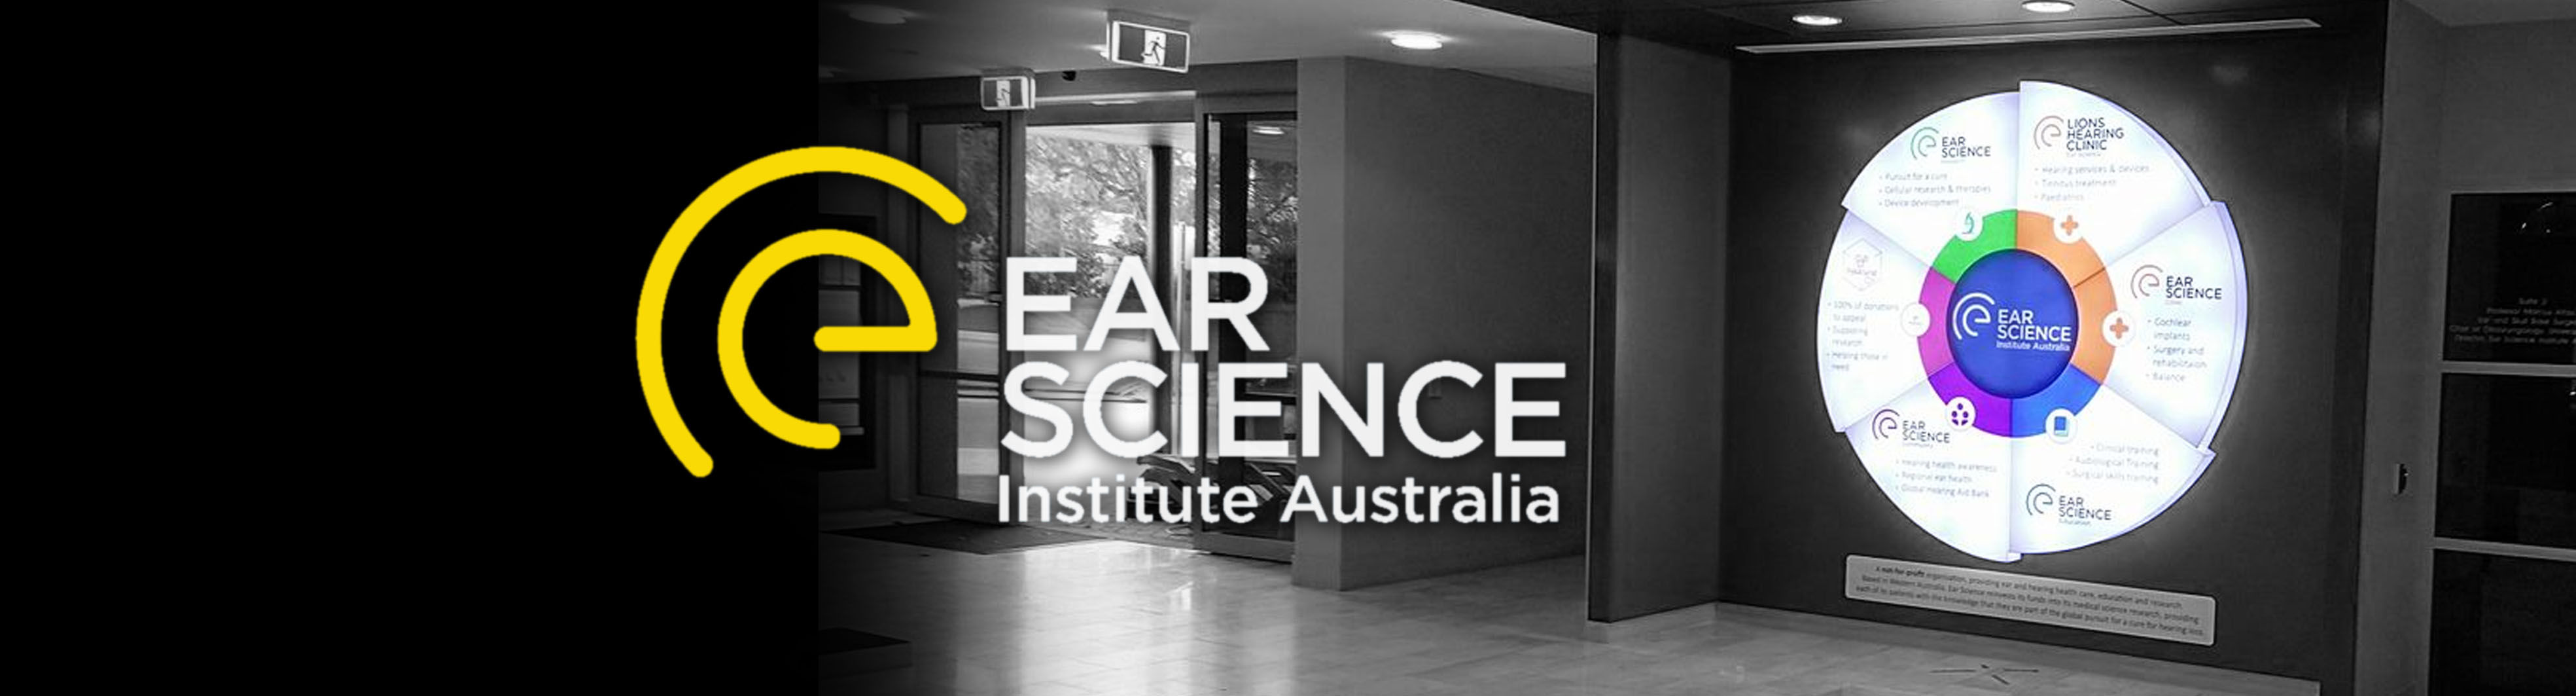 ear science